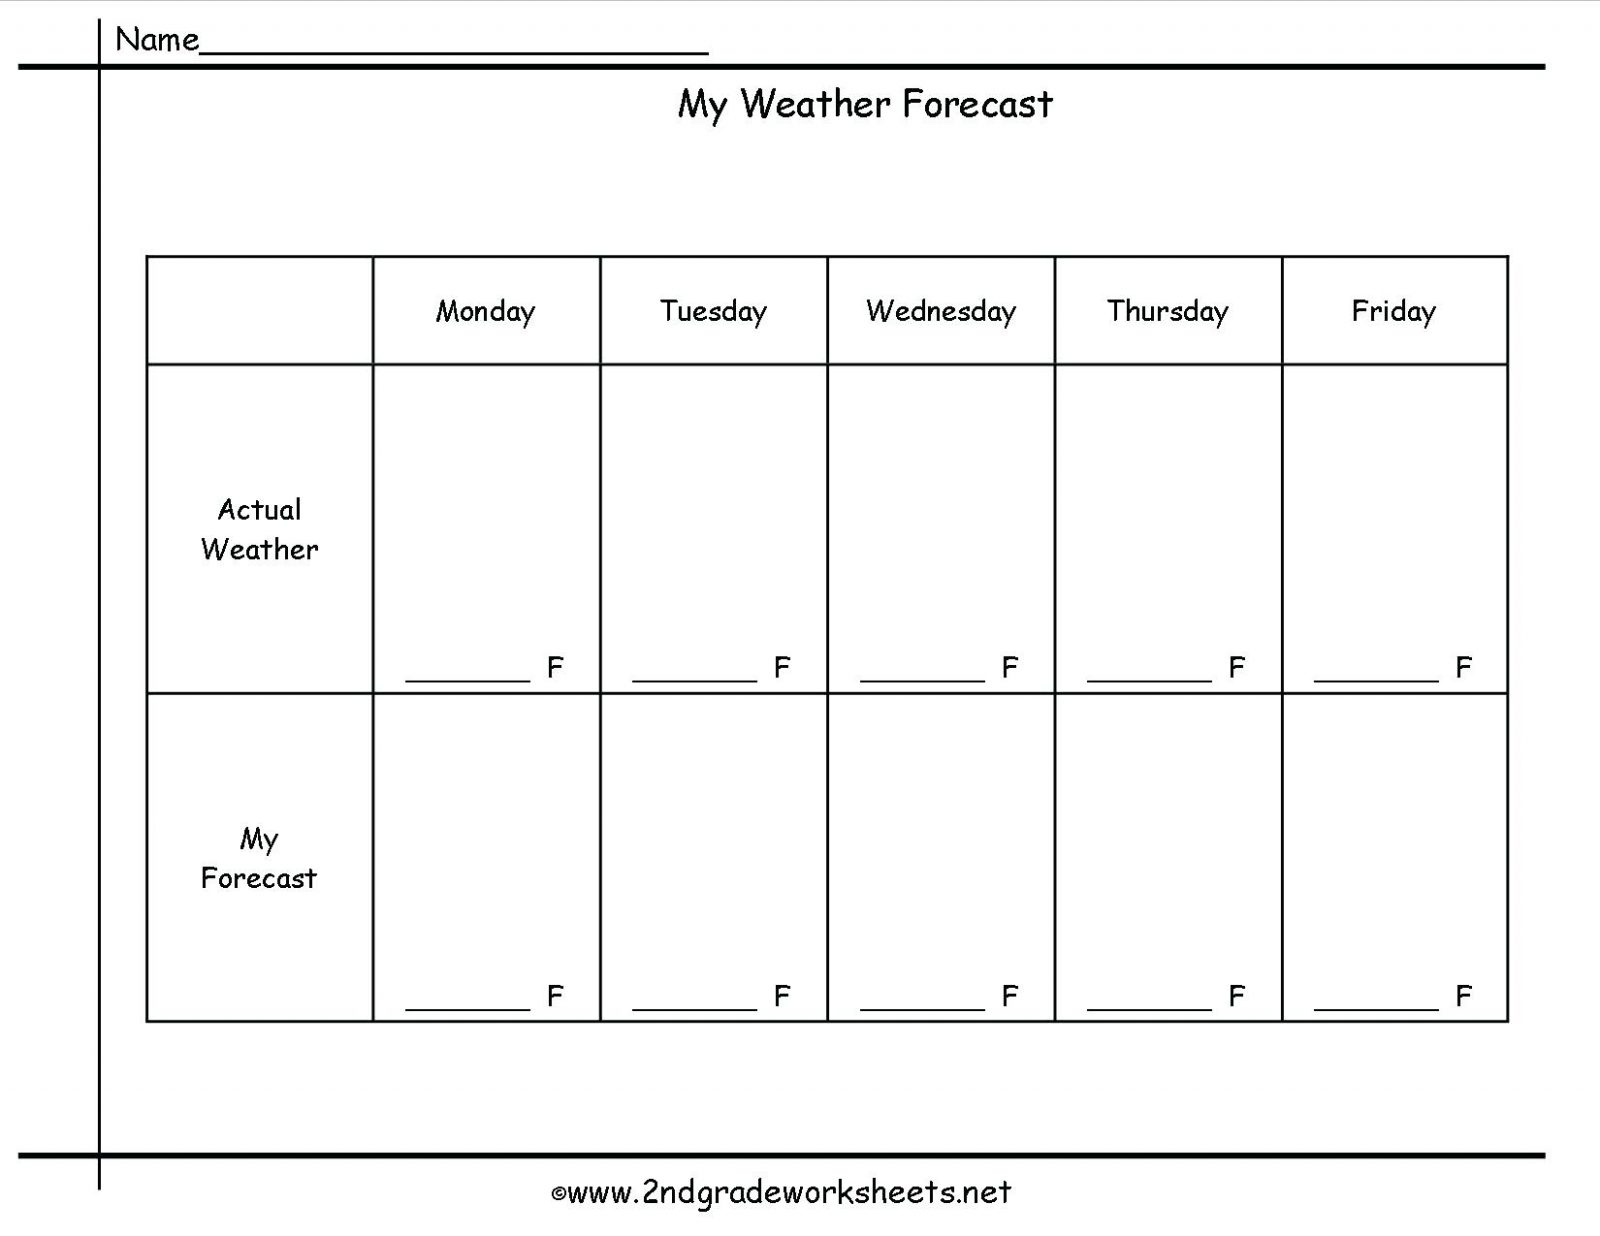 Weather Forecast Excel Spreadsheet Pertaining To Report Prescott Weather Feature Template Ks2 Forecast Psd After